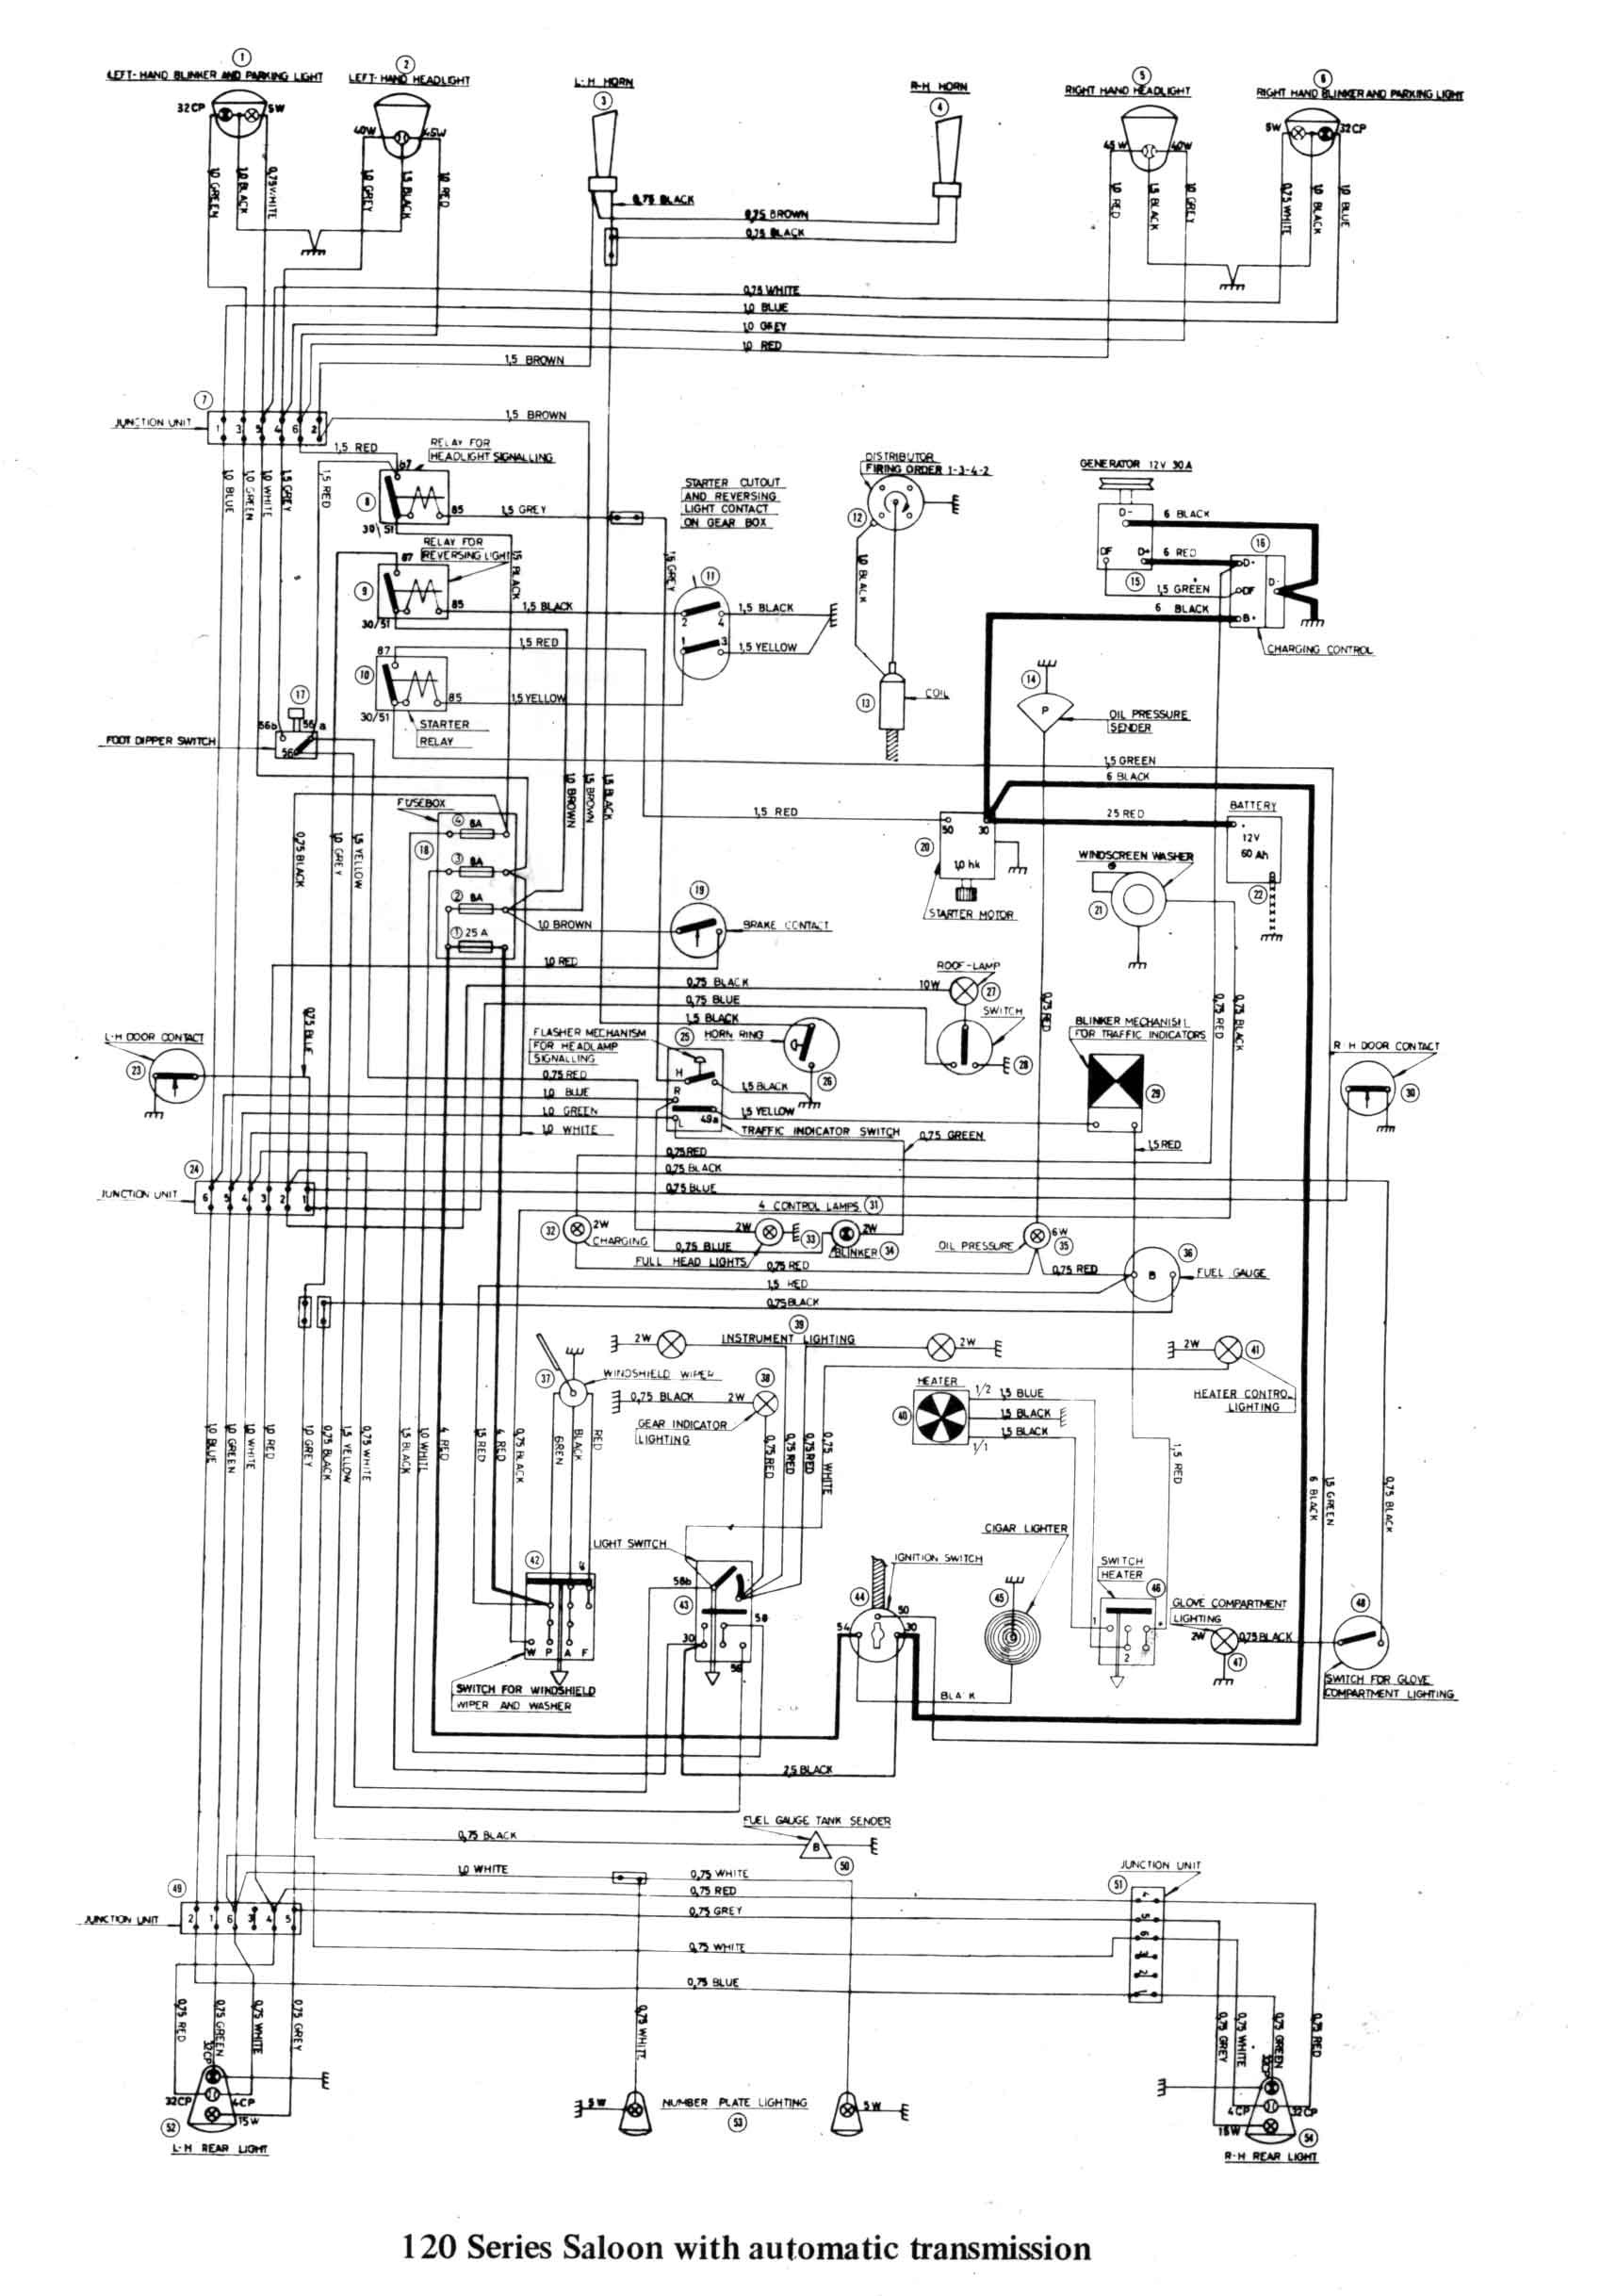 98 jeep cherokee power window wiring diagram wiring library rh uitgeverijdewereld nl